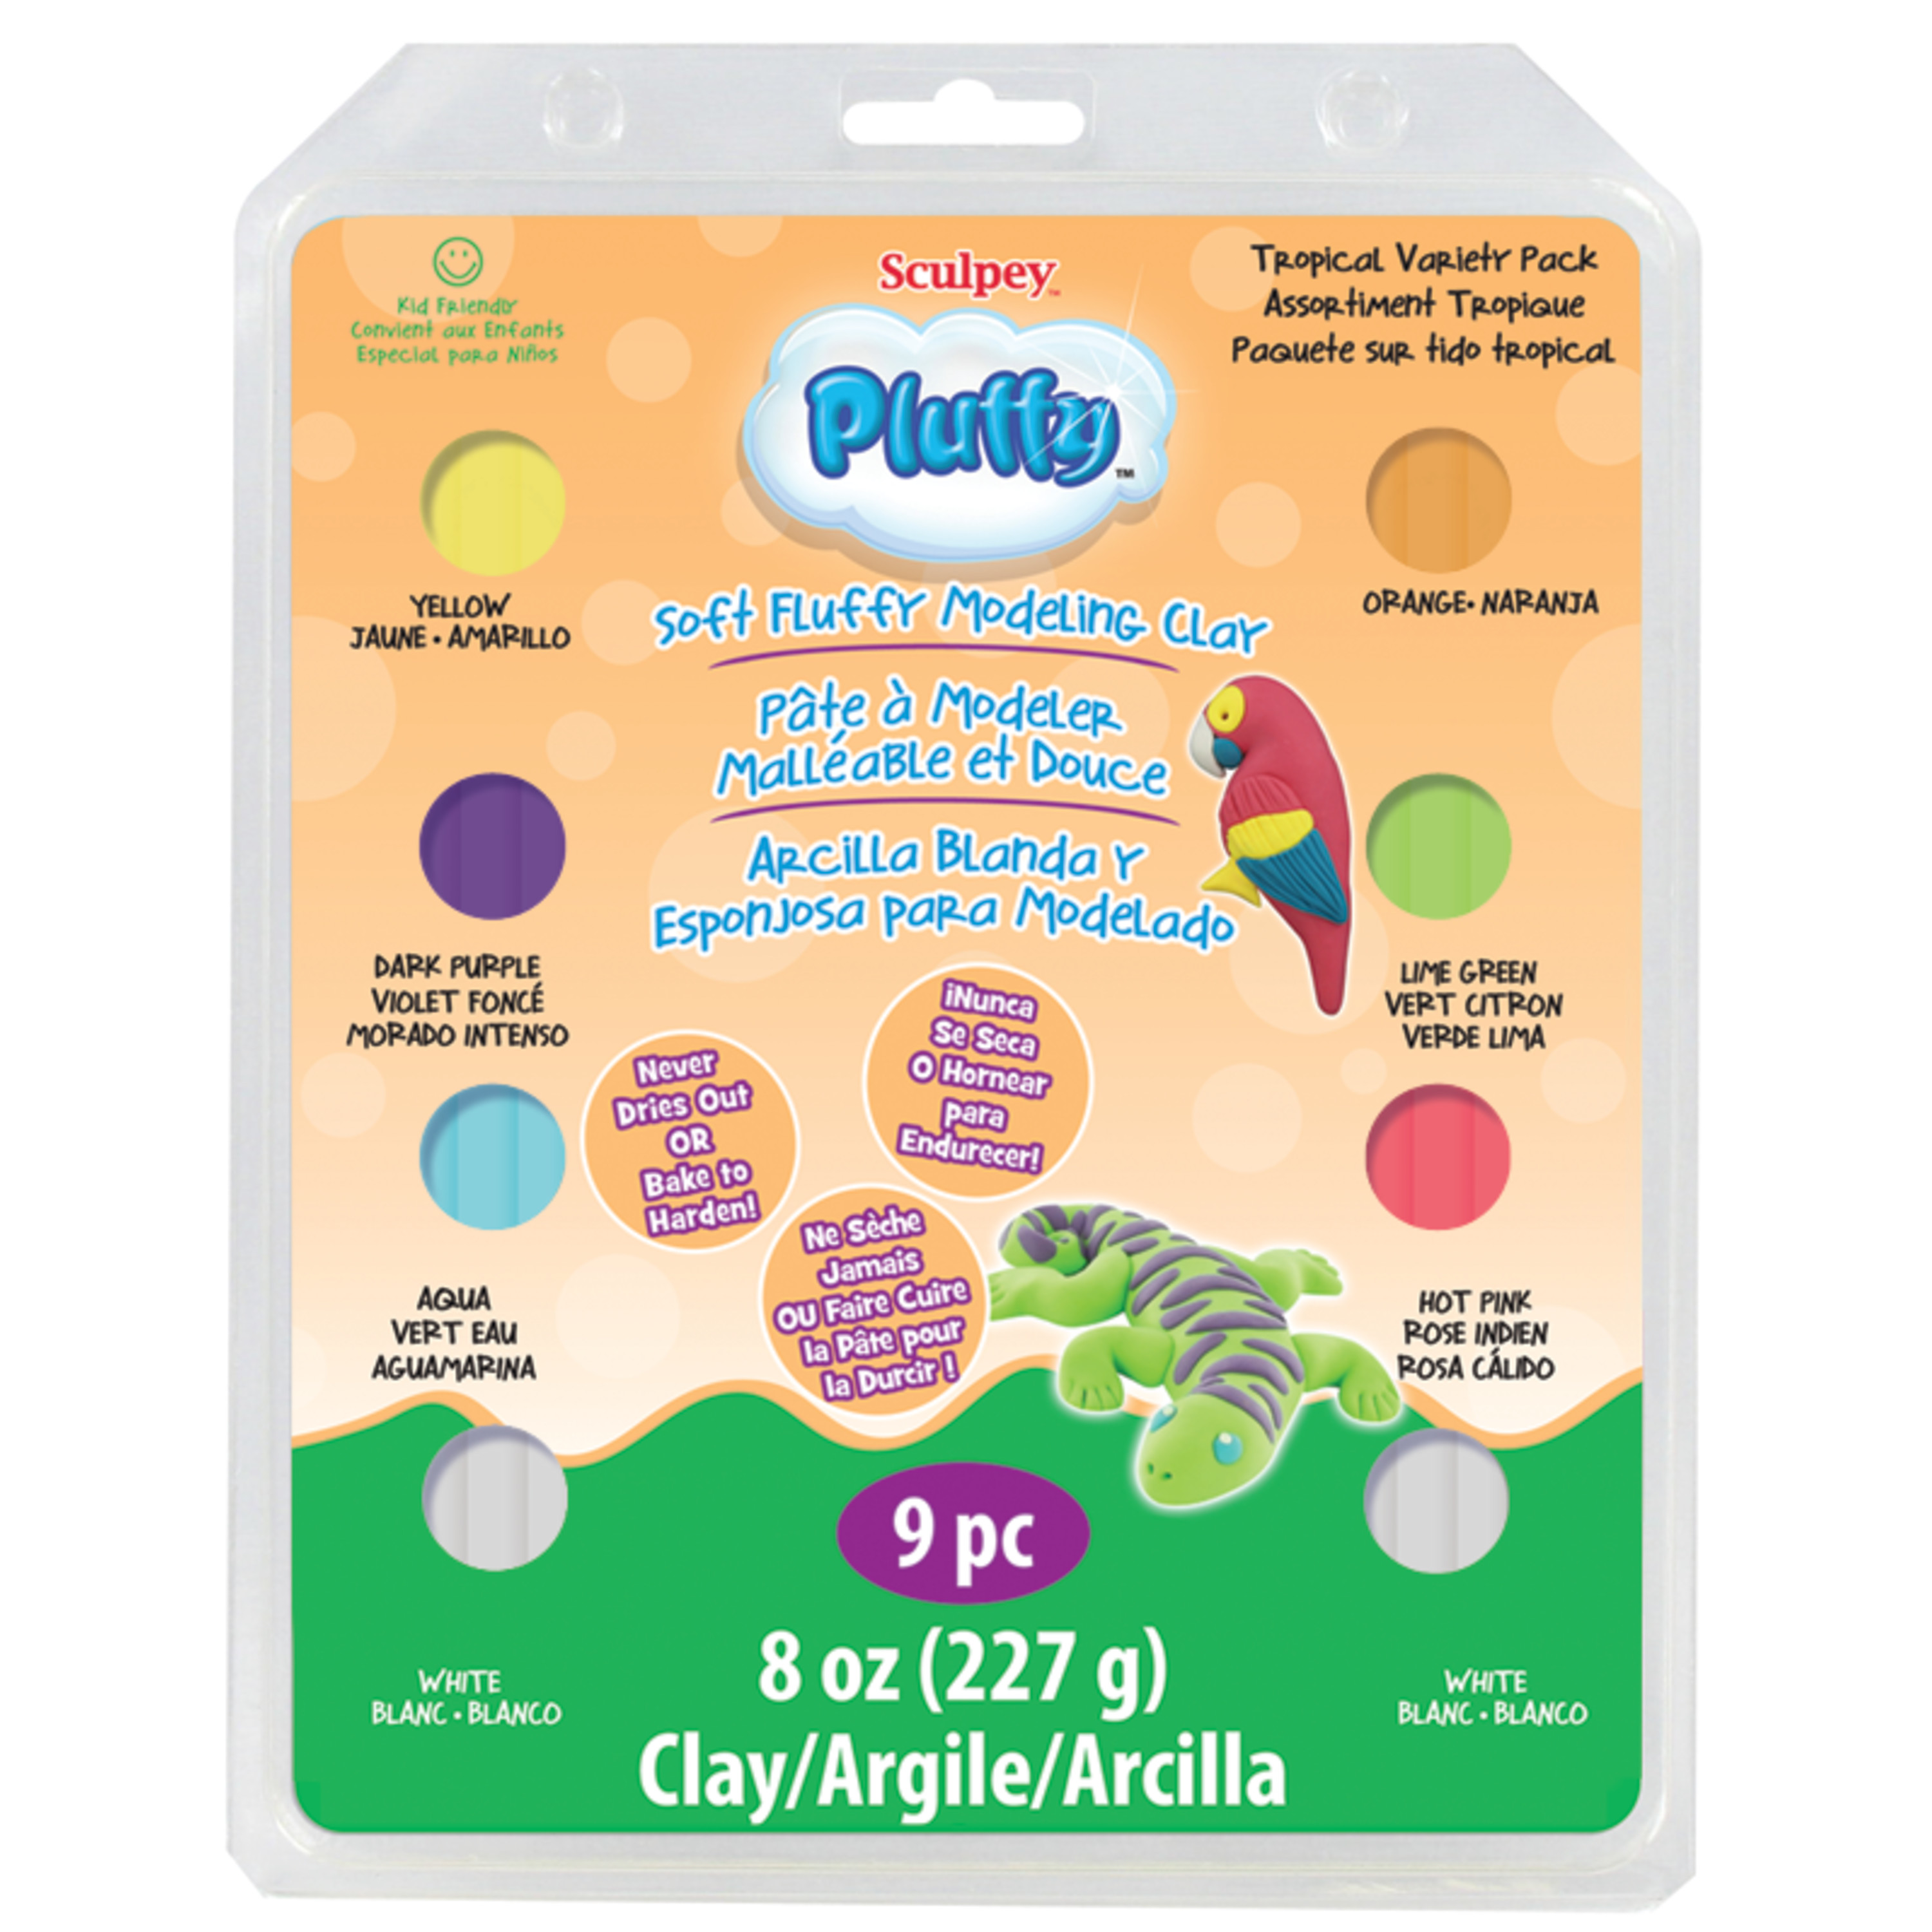 Sculpey Pluffy Variety Pack, Tropical